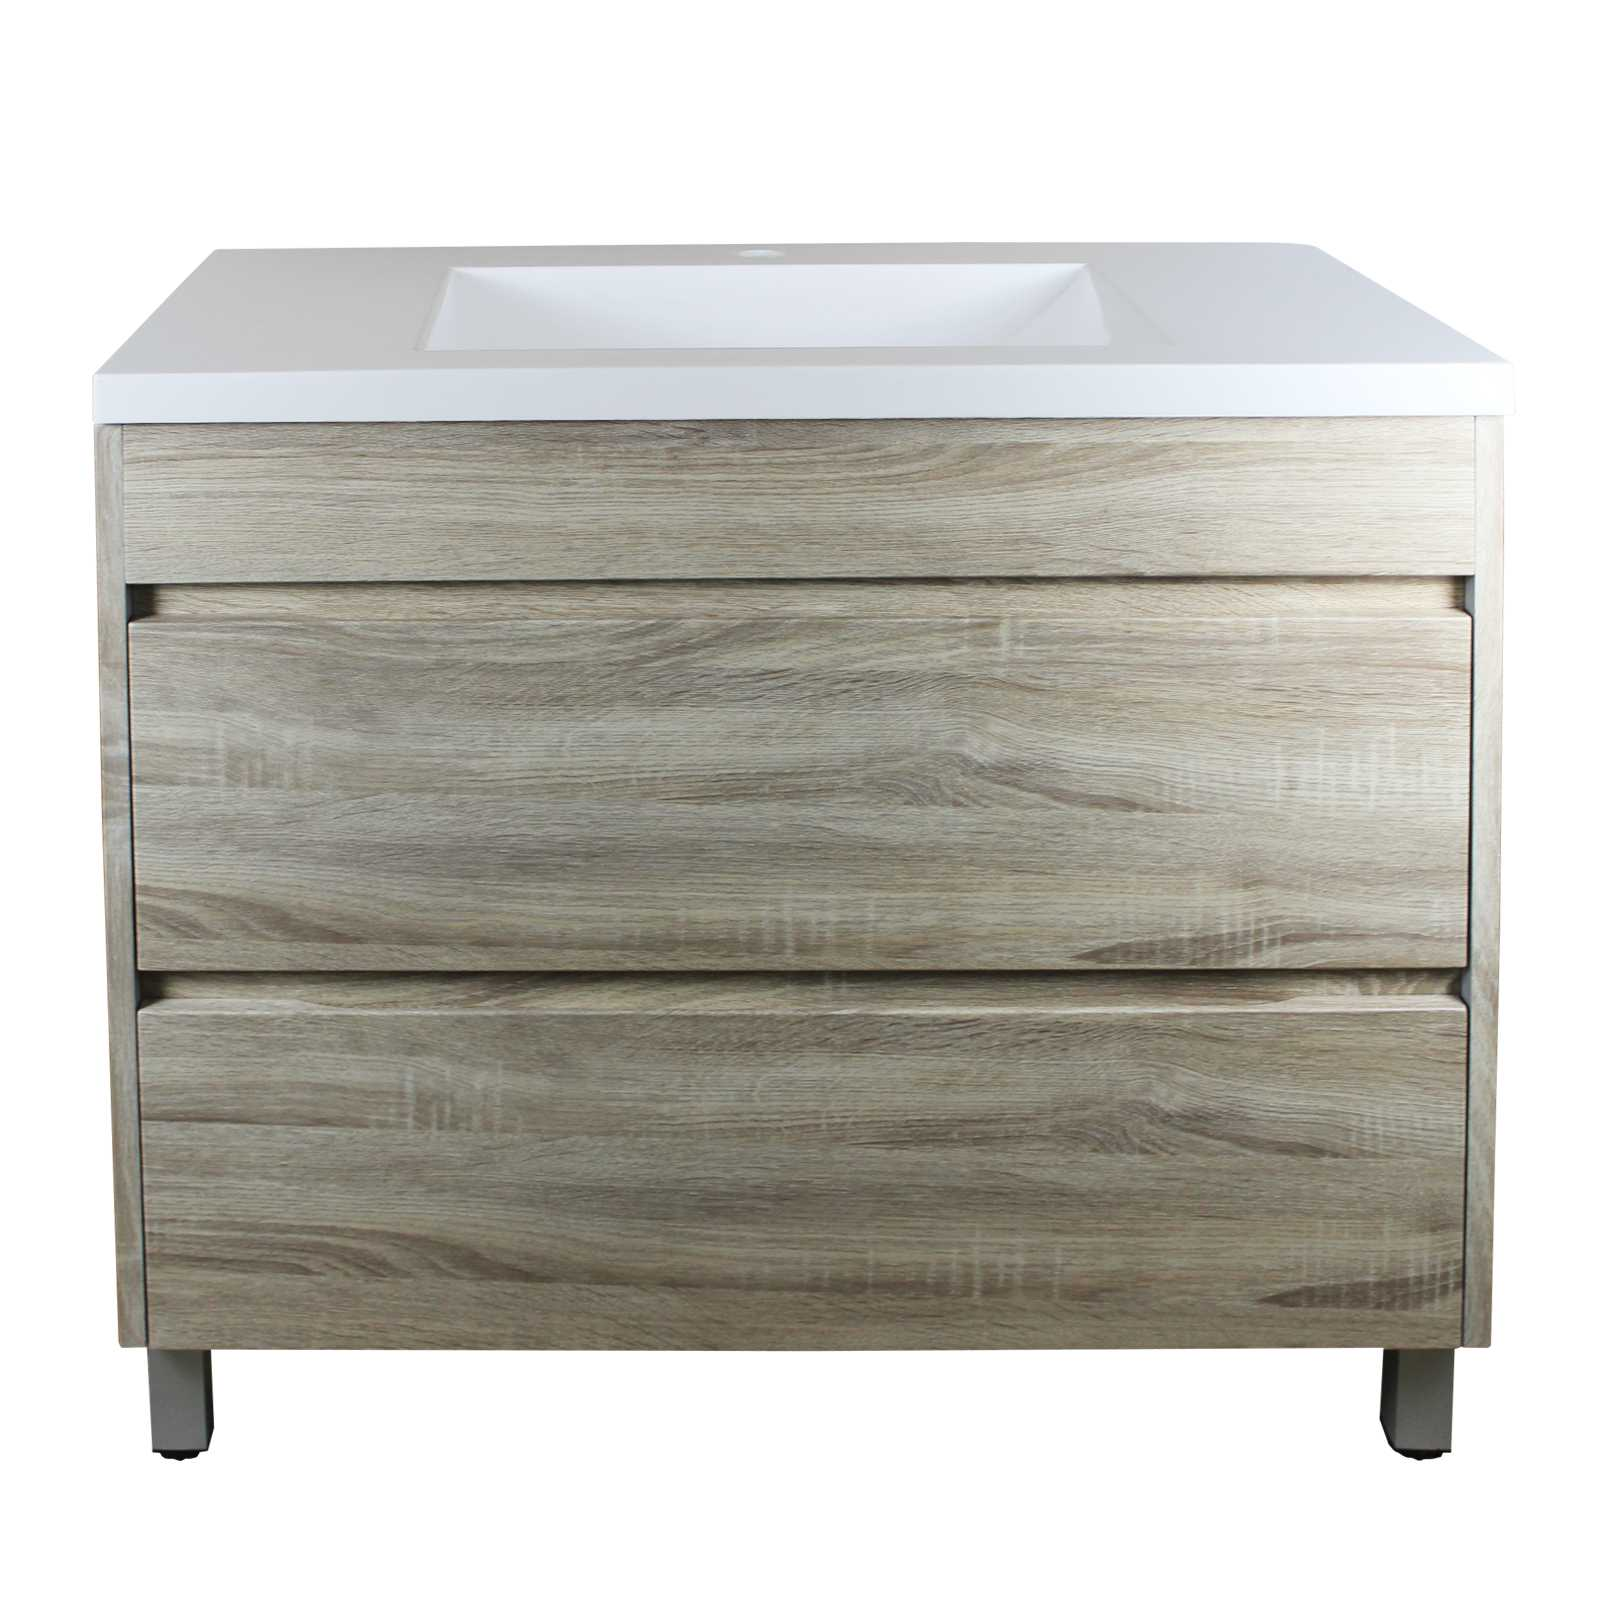 900mm White Oak Drawer Vanity on Legs